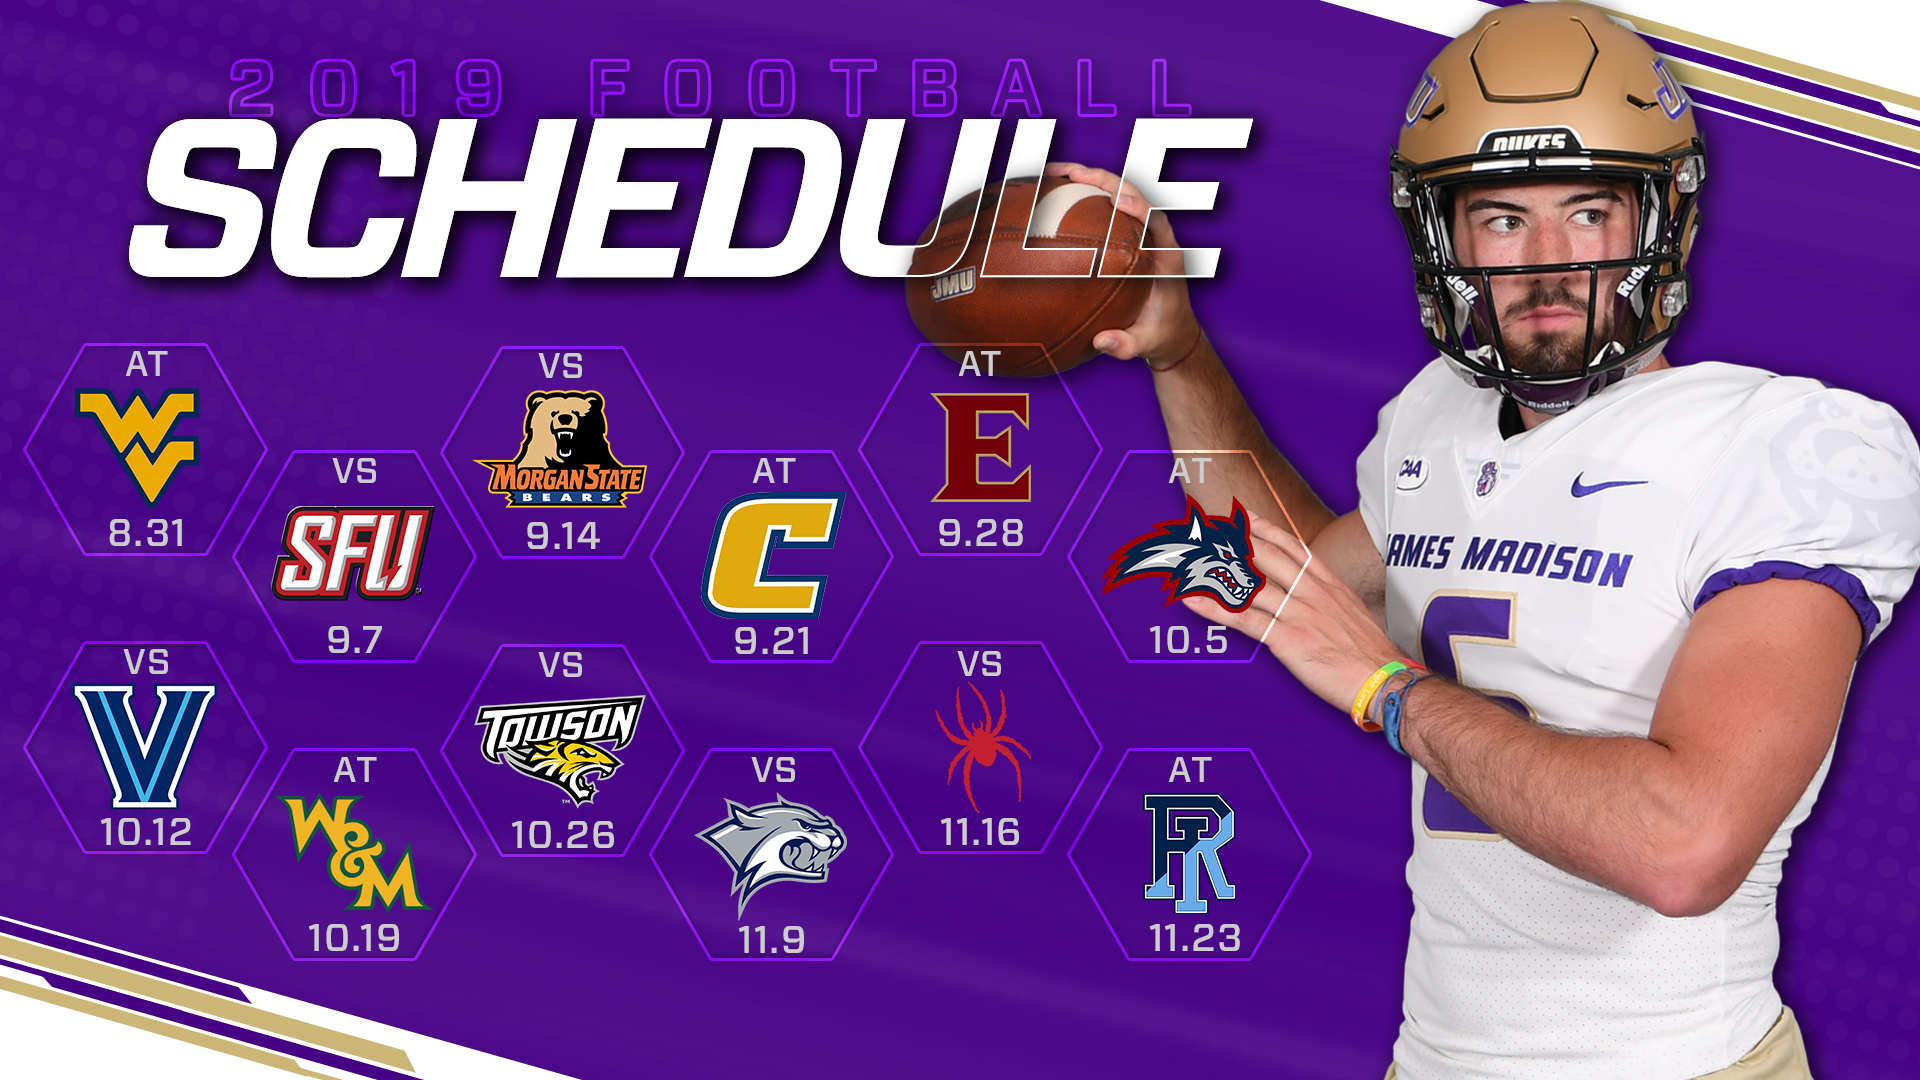 Wvu 2020 Football Schedule JMU Announces 12 Game Slate for 2019 Football Season   James